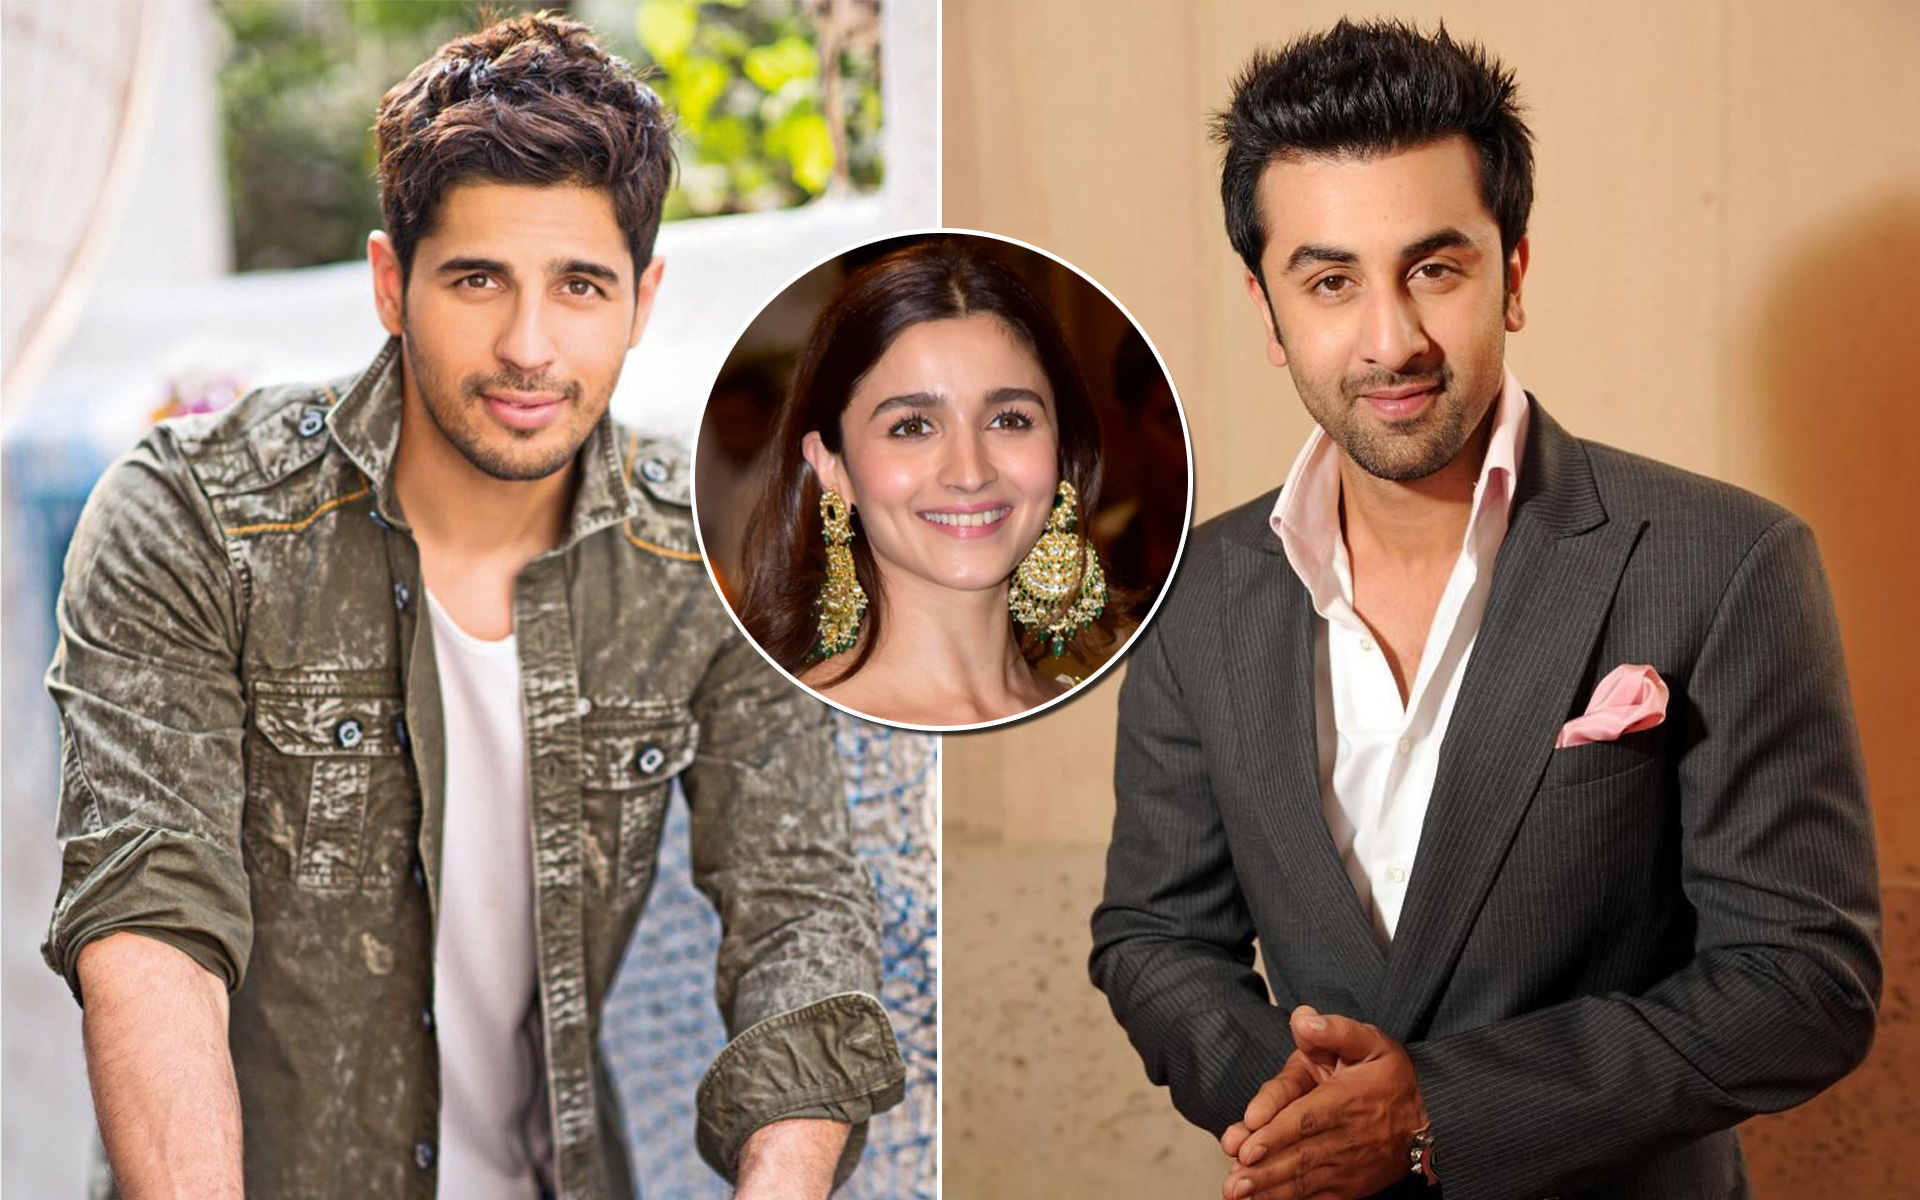 Sidharth Malhotra Doesn't Want To Be A Part Of Football Club Featuring Ranbir Kapoor? Is Alia Bhatt The Reason?